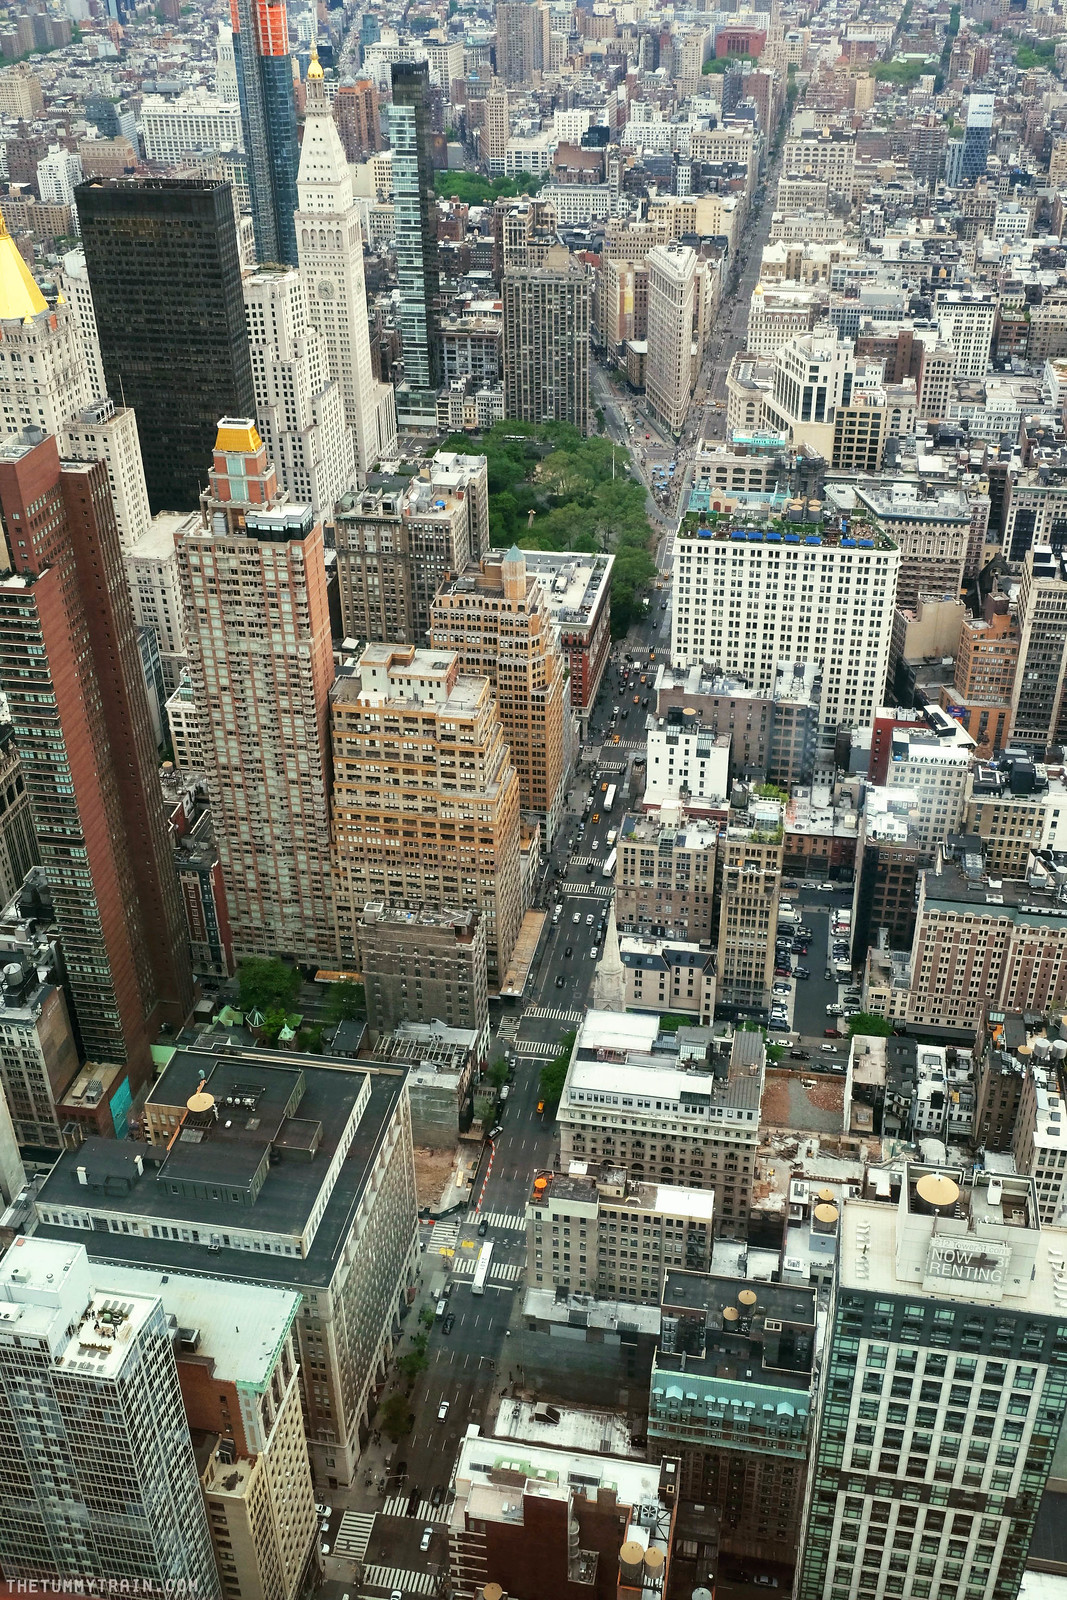 30094741311 c9374387a8 h - USA 2016 Travel Diary: Empire State Building VS Top of the Rock